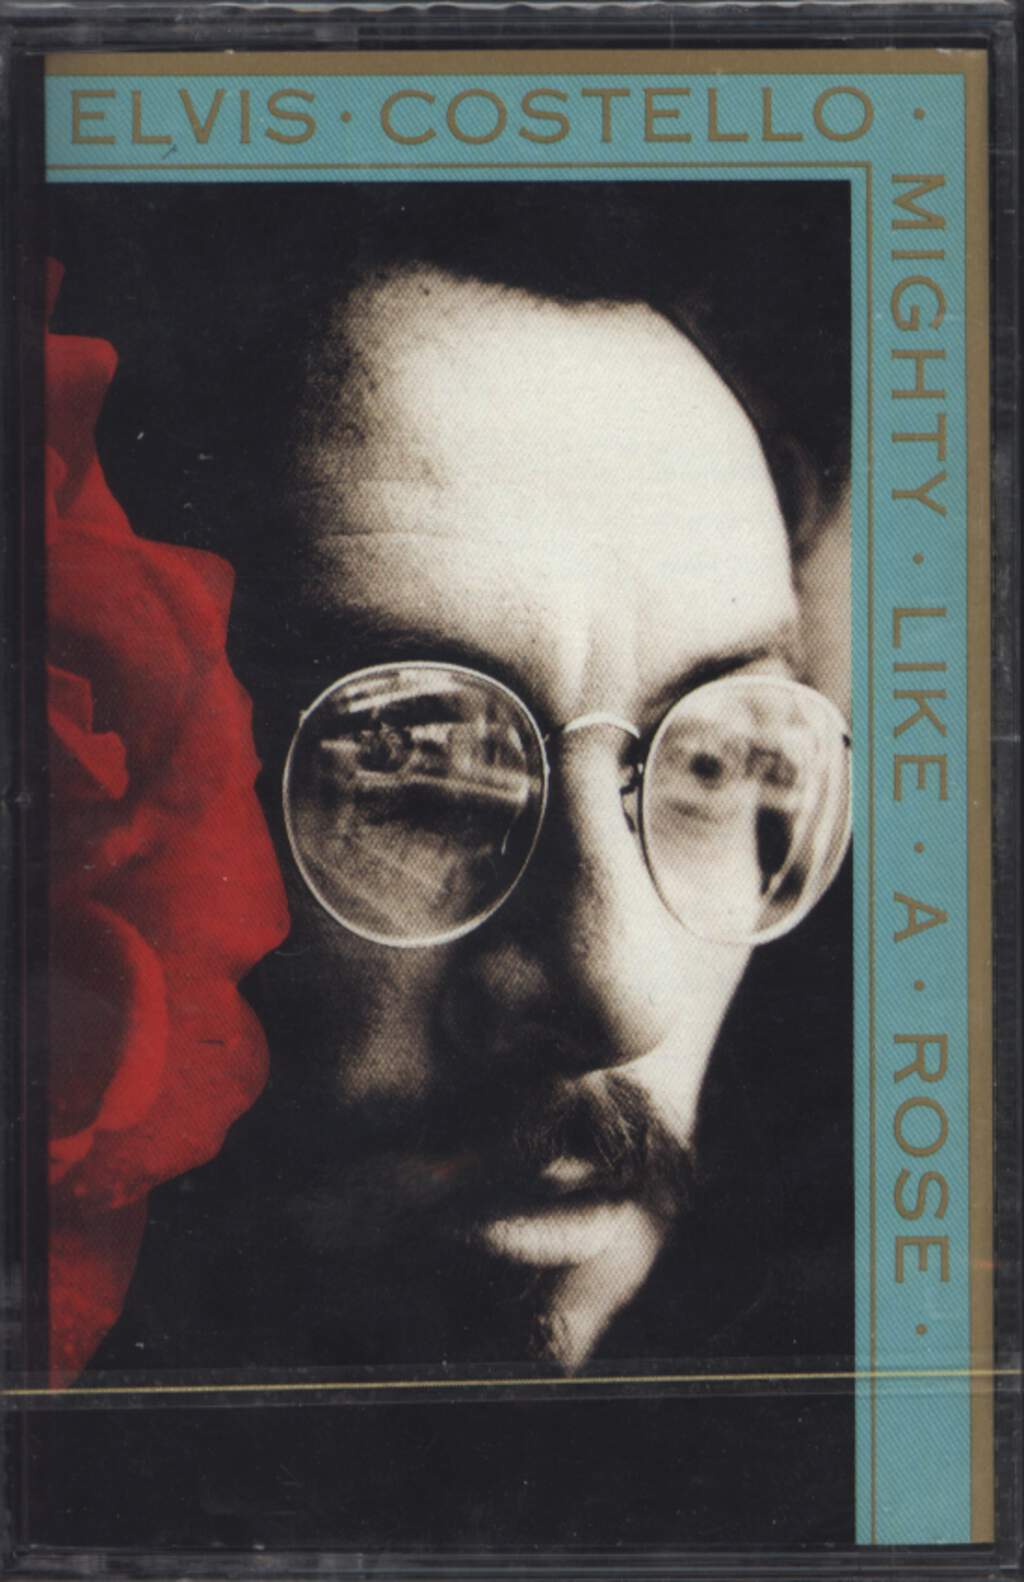 Elvis Costello: Mighty Like A Rose, Compact Cassette